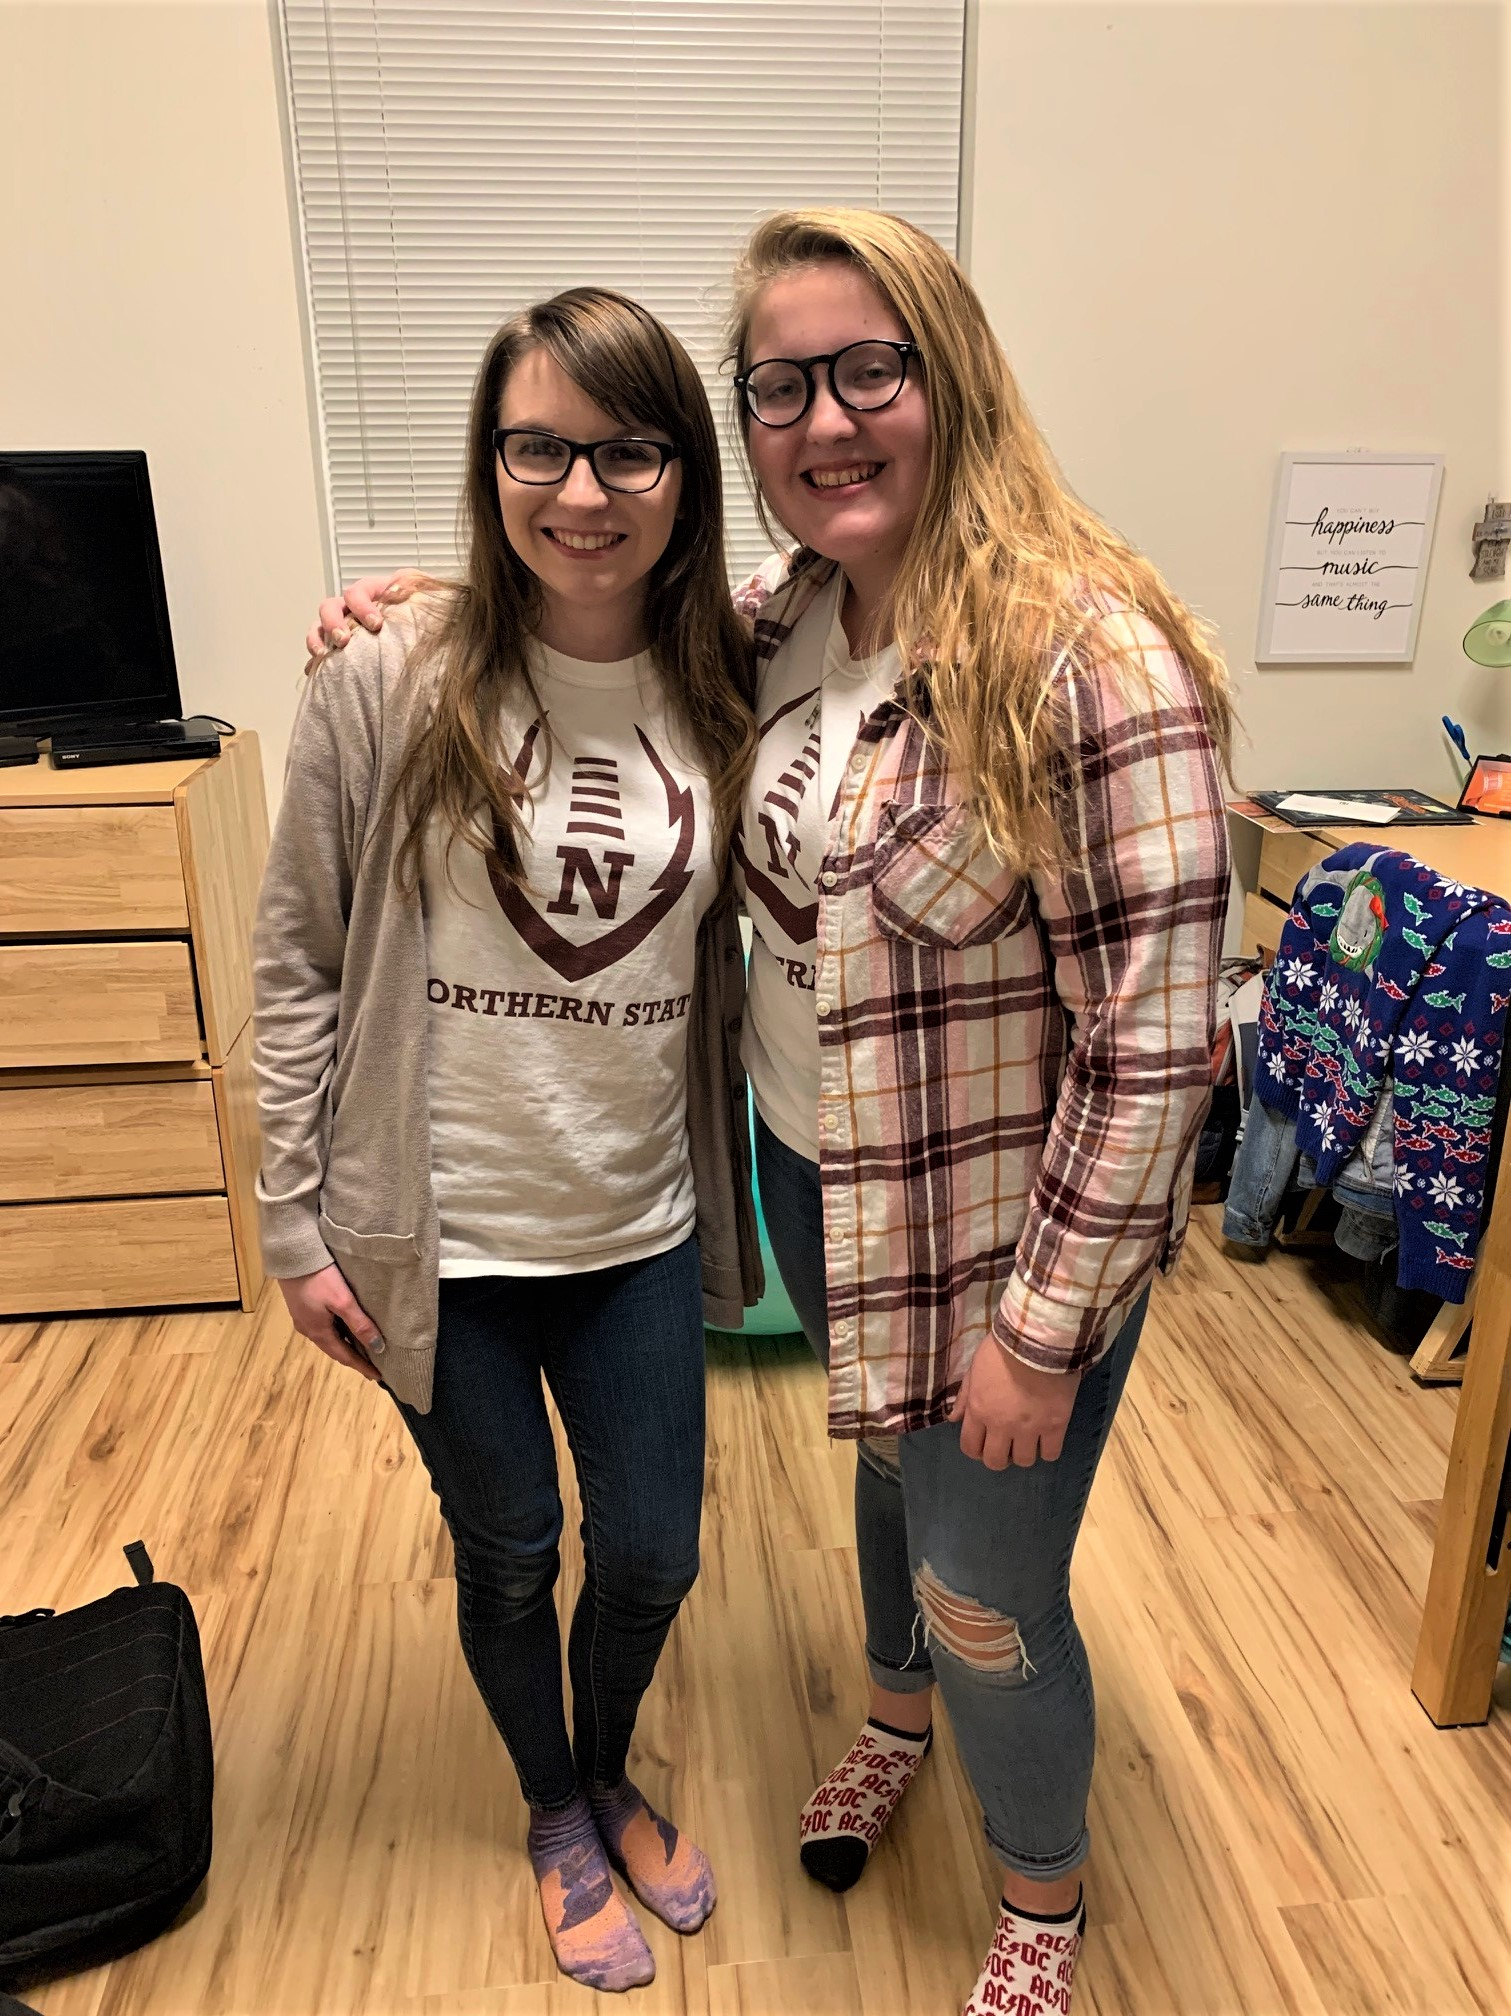 Two roommates standing together in their residence hall room